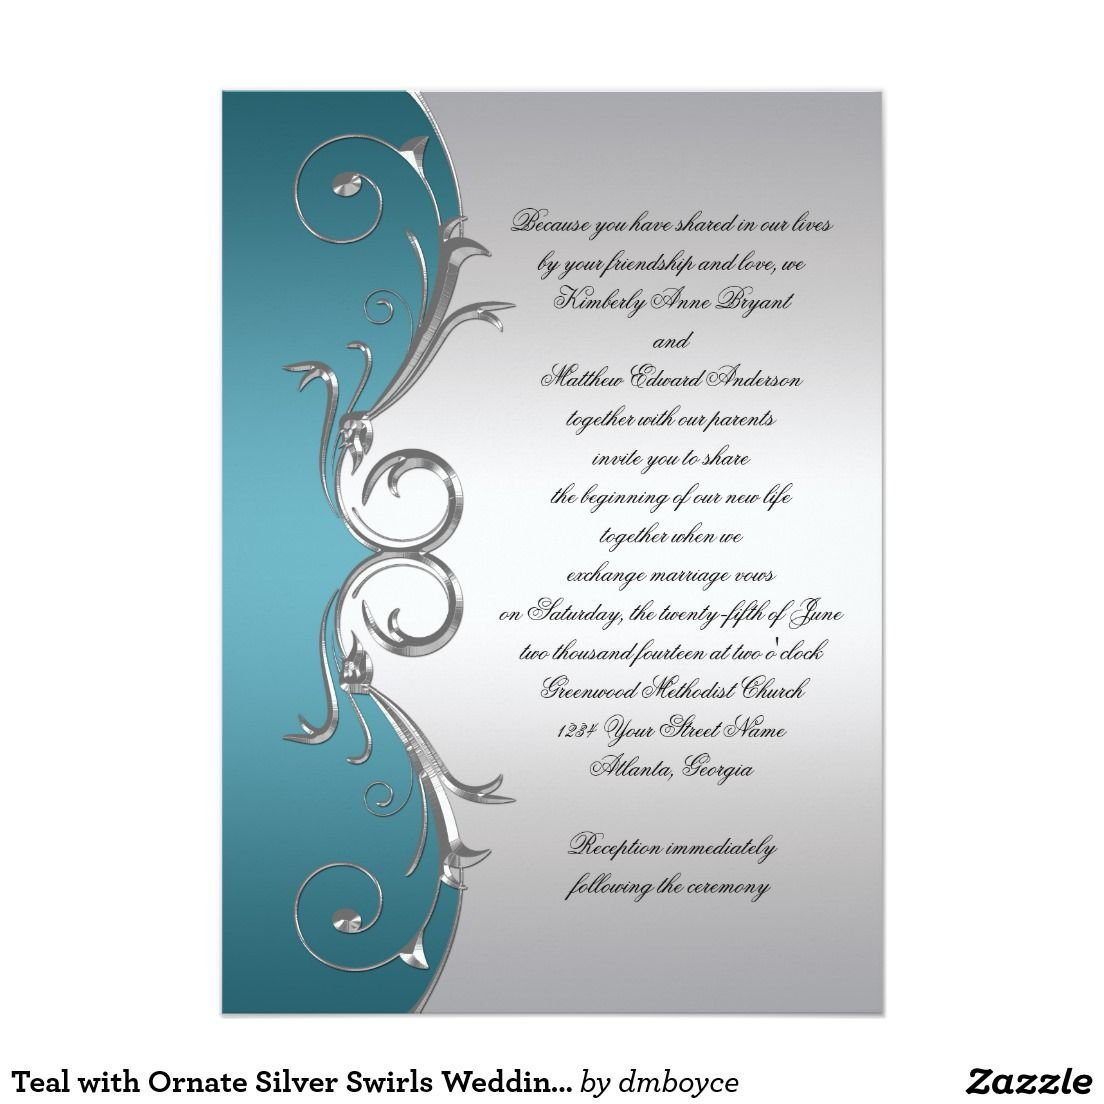 Celebrity Wedding Invites: Teal With Ornate Silver Swirls Wedding Celebration